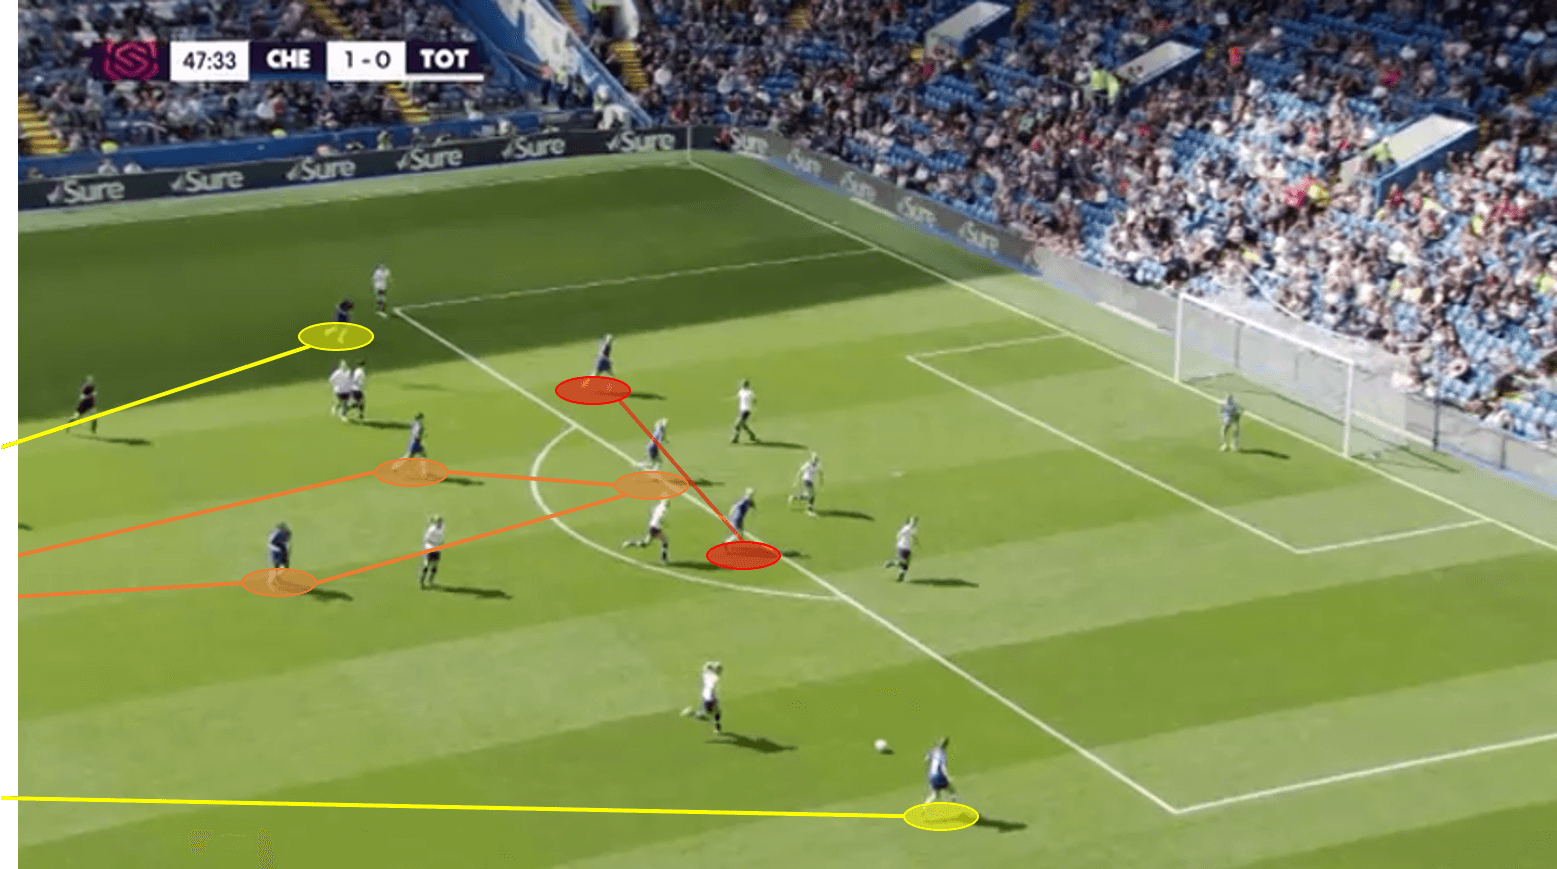 FAWSL 2019/20: Chelsea vs Tottenham - Tactical Analysis tactics